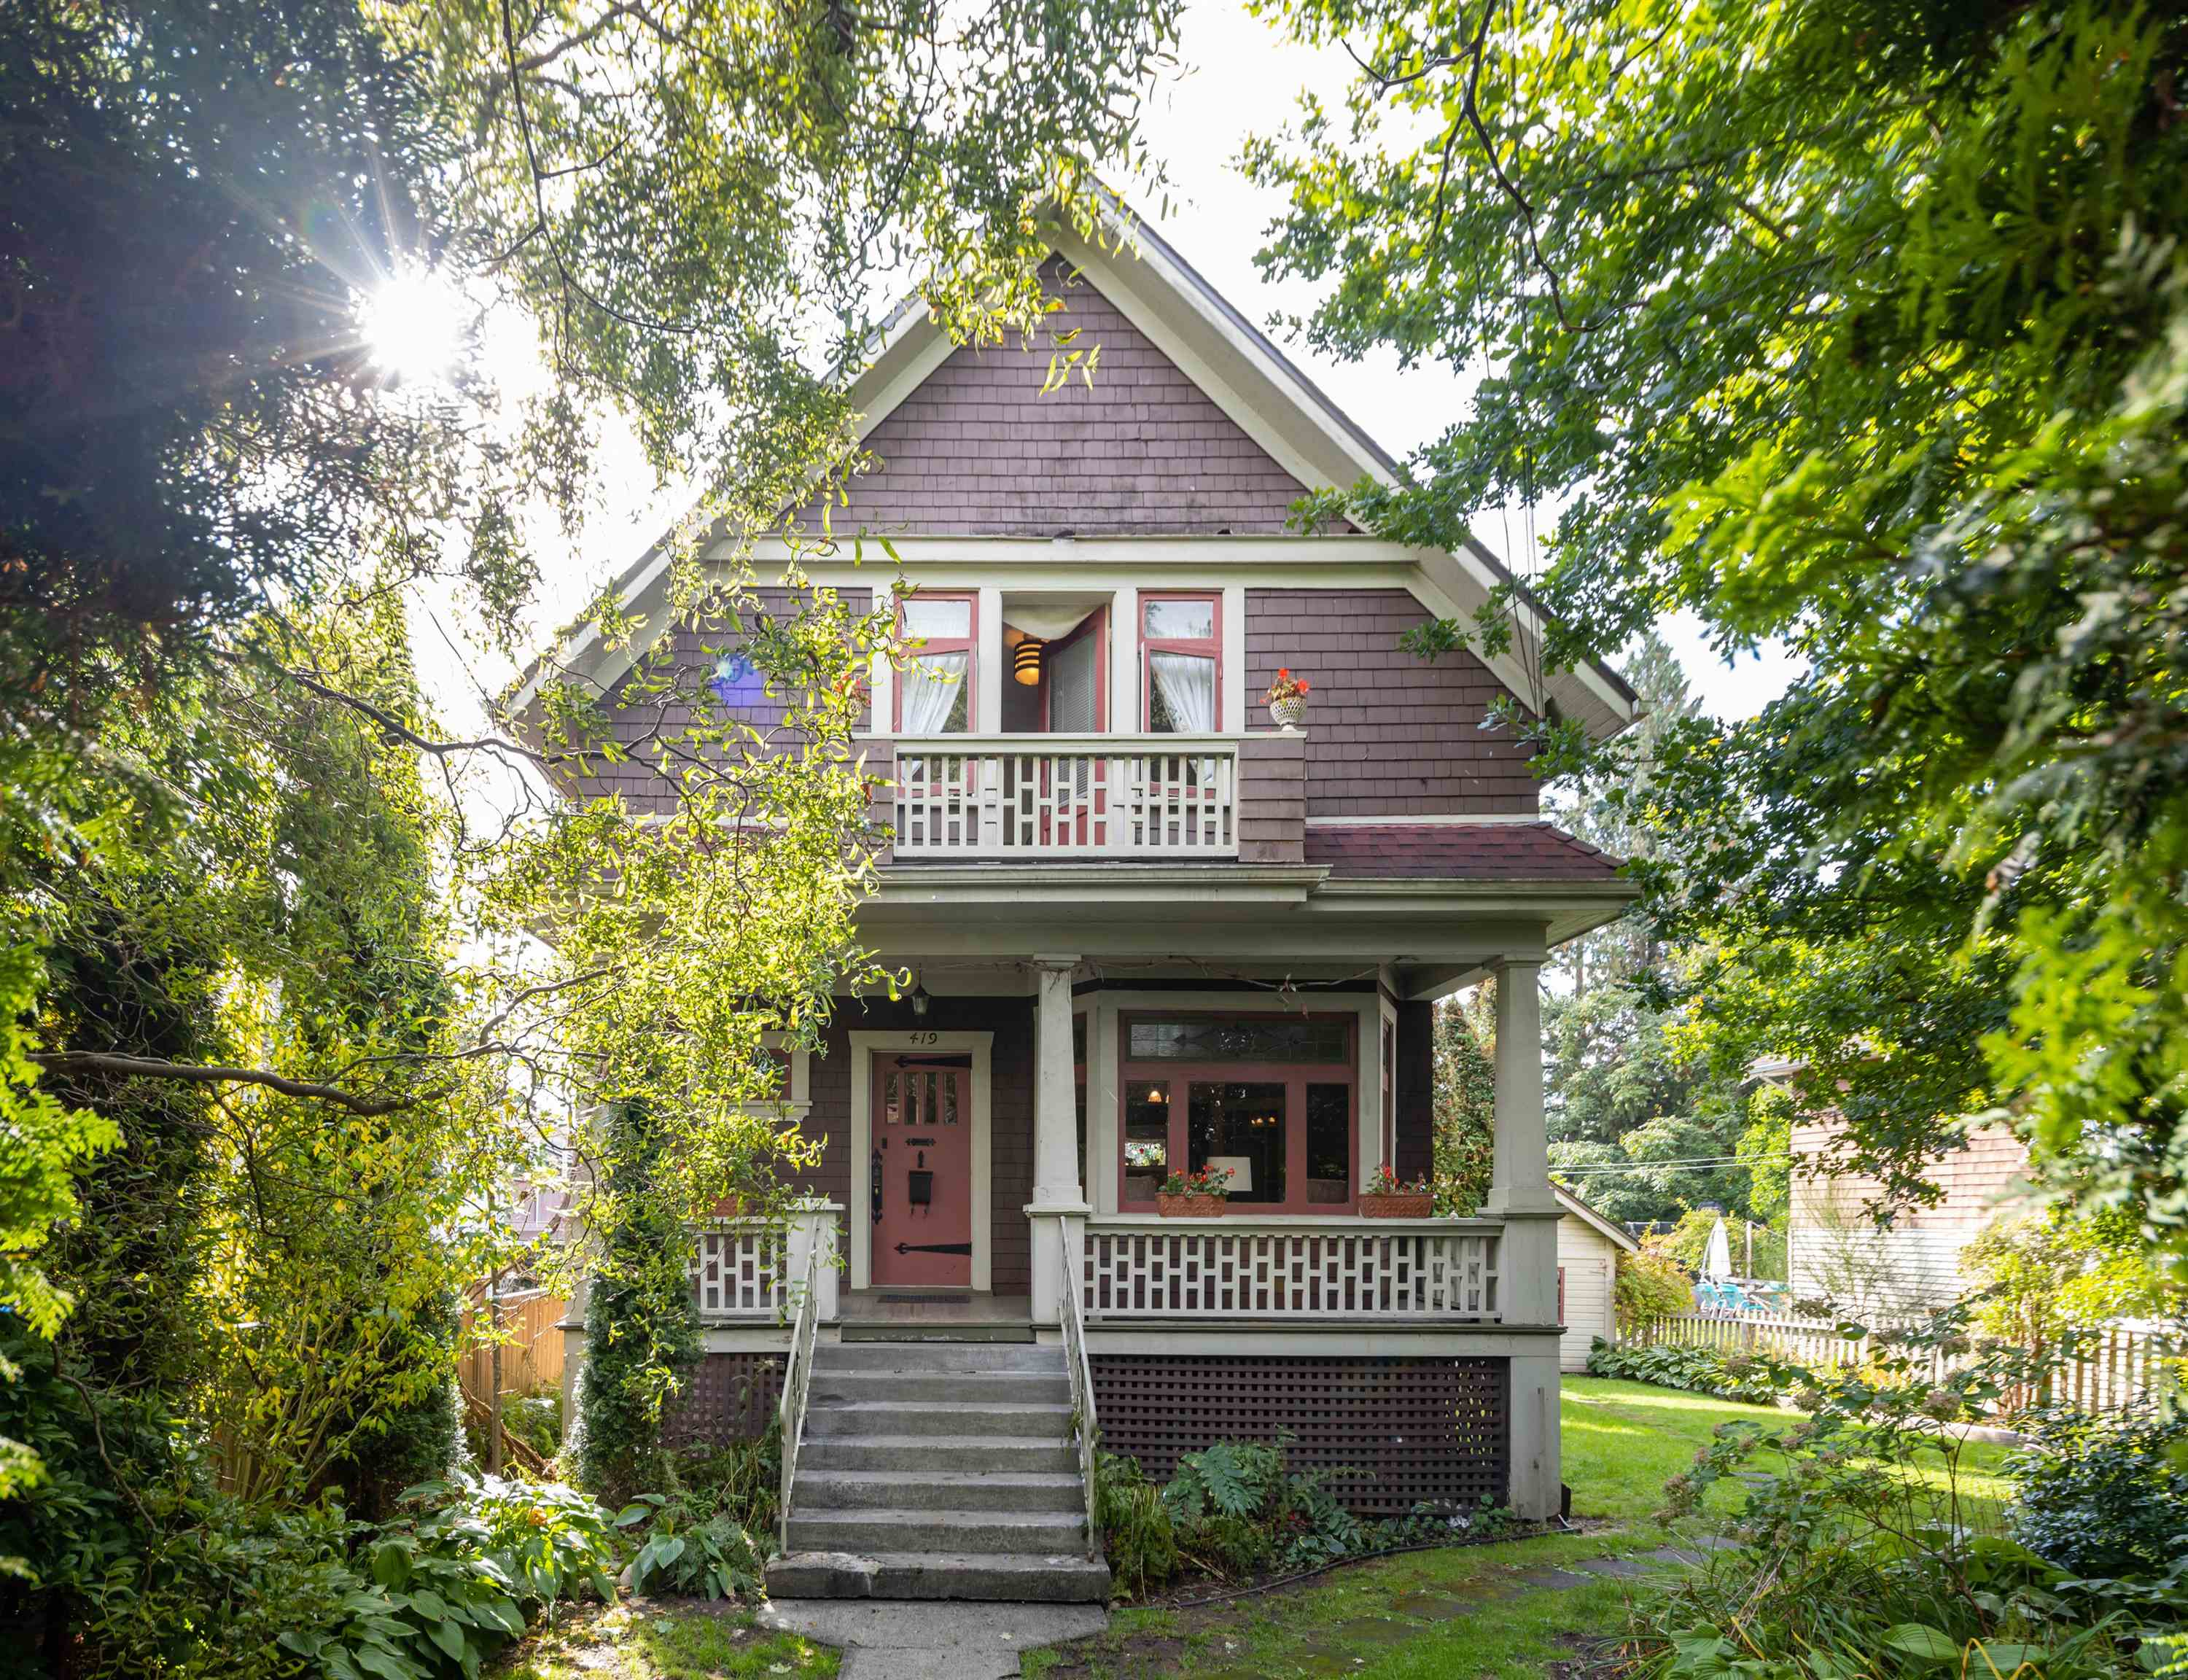 419 E 13TH STREET - Central Lonsdale House/Single Family for sale, 4 Bedrooms (R2623654) - #1